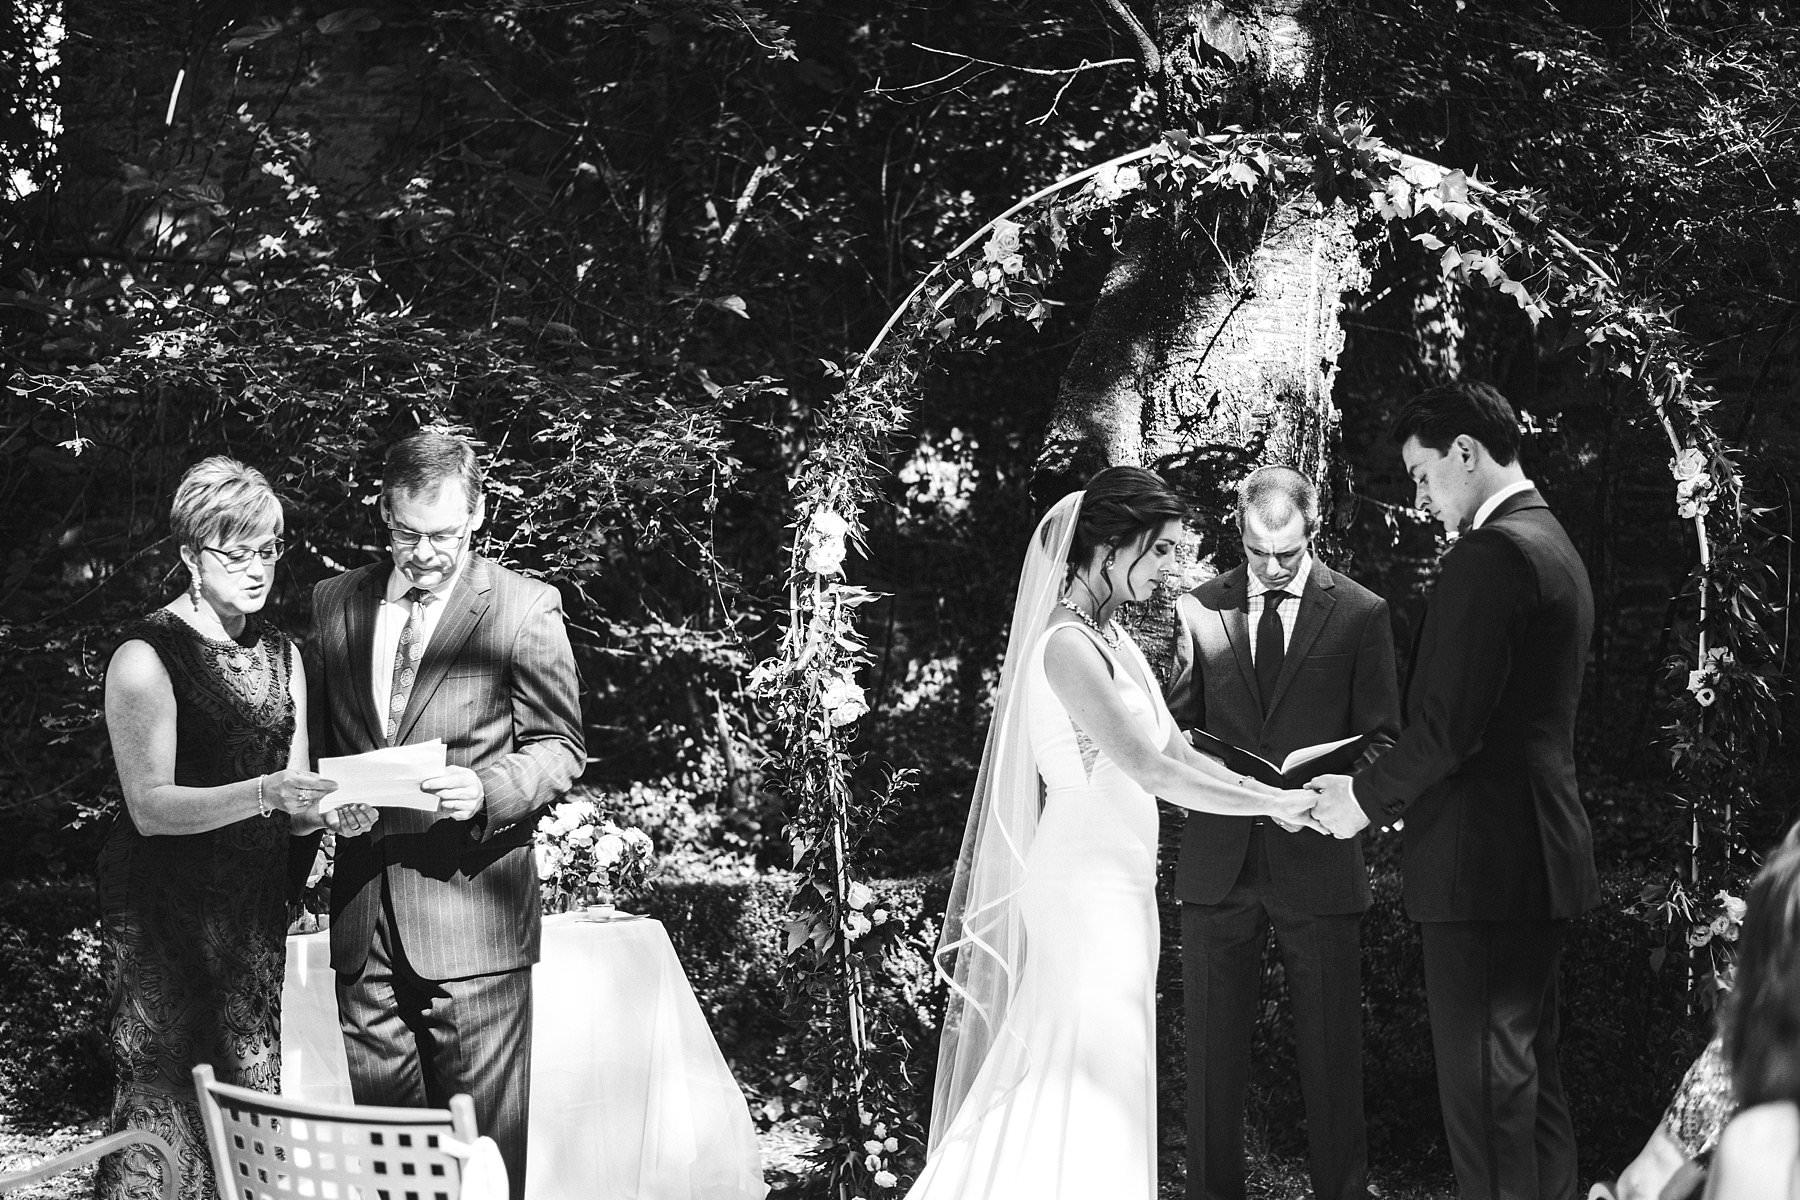 Lovely moment during symbolic destination wedding intimate ceremony at Palazzo Vanneschi Villa Cini in Bucine